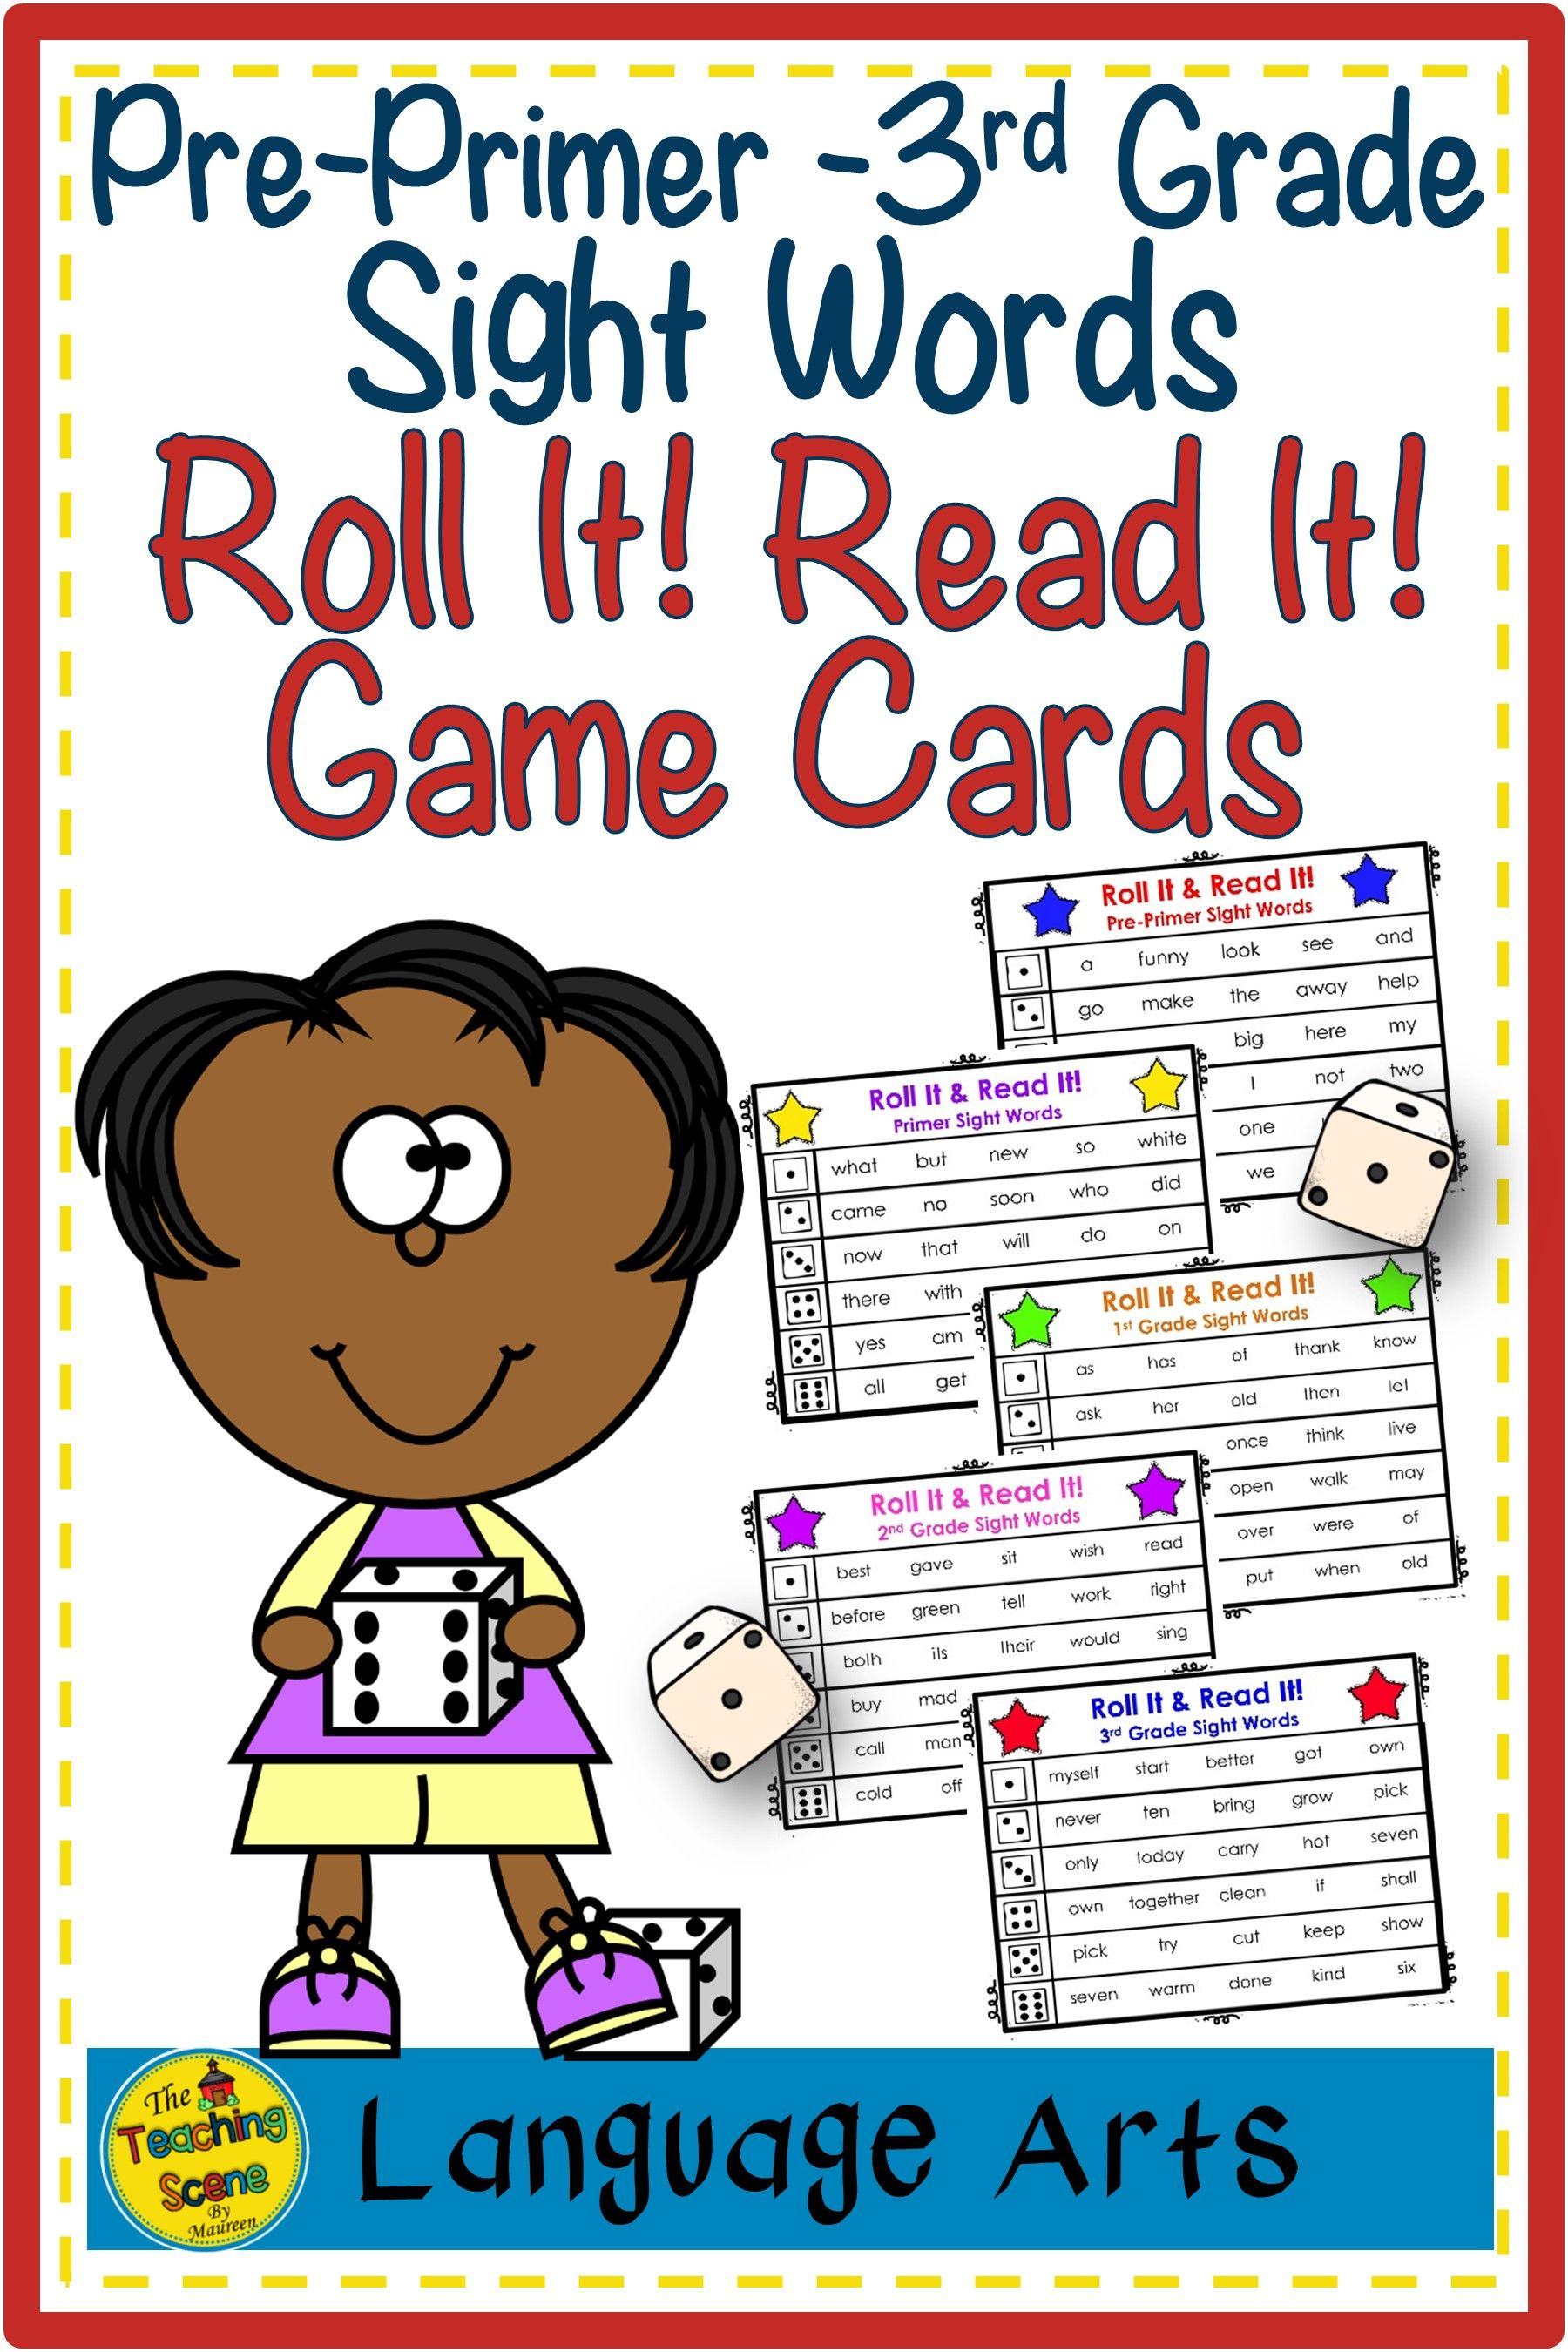 Pre Primer Through 3rd Grade Sight Words Roll It Read It Game Cards Third Grade Sight Words Sight Word Reading Sight Words [ 2700 x 1800 Pixel ]